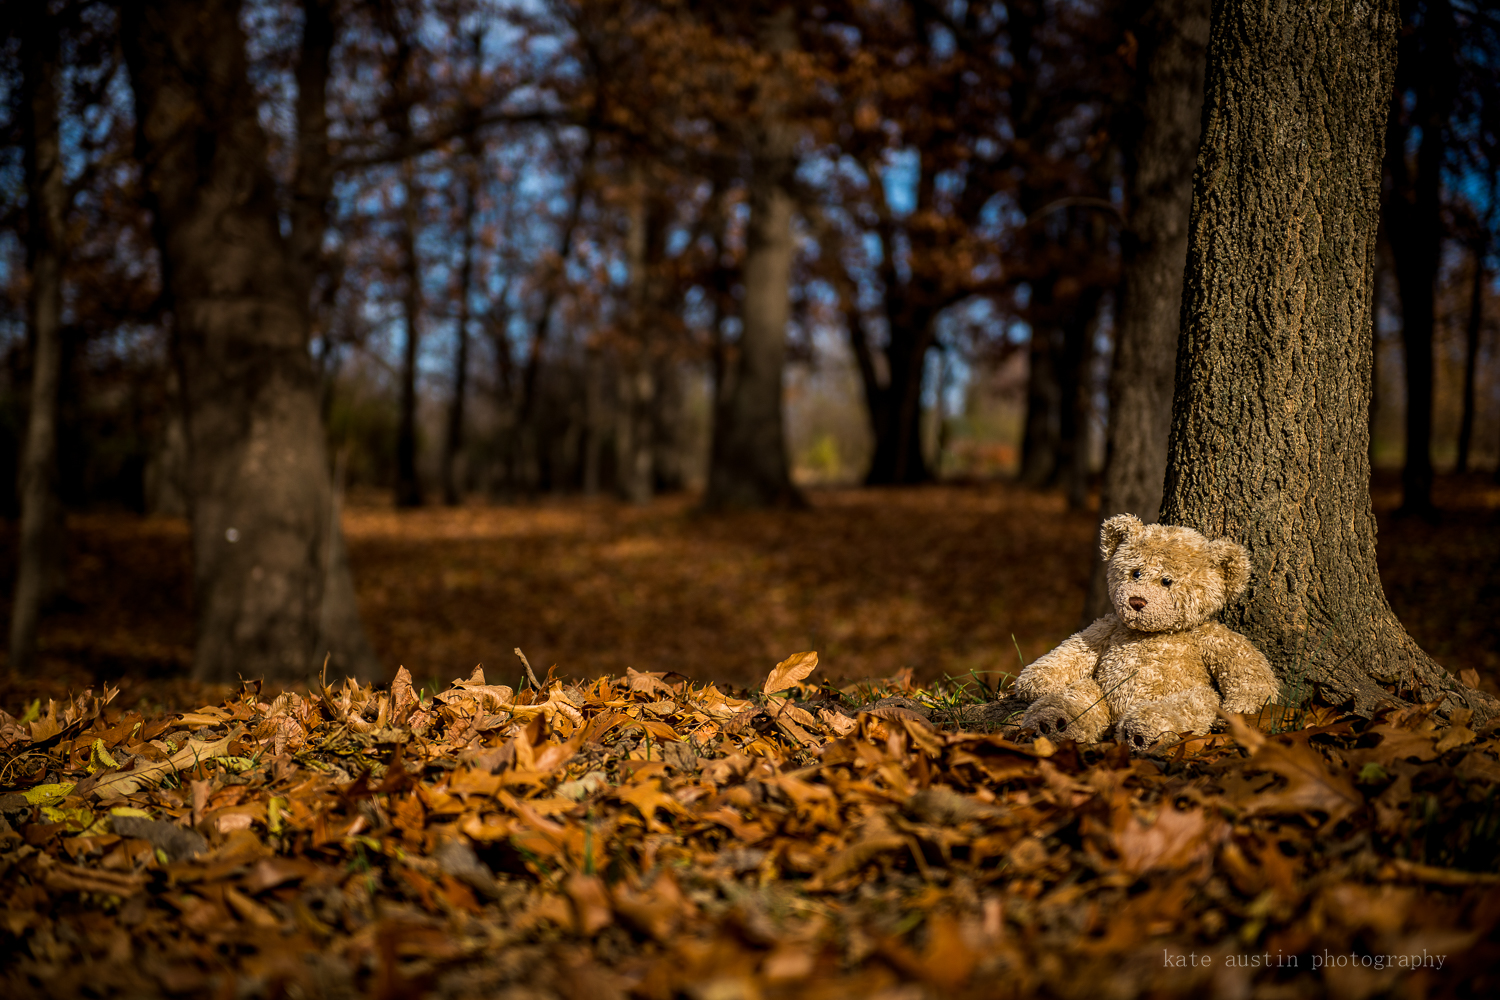 teddy_in_woods20161201--3.jpg